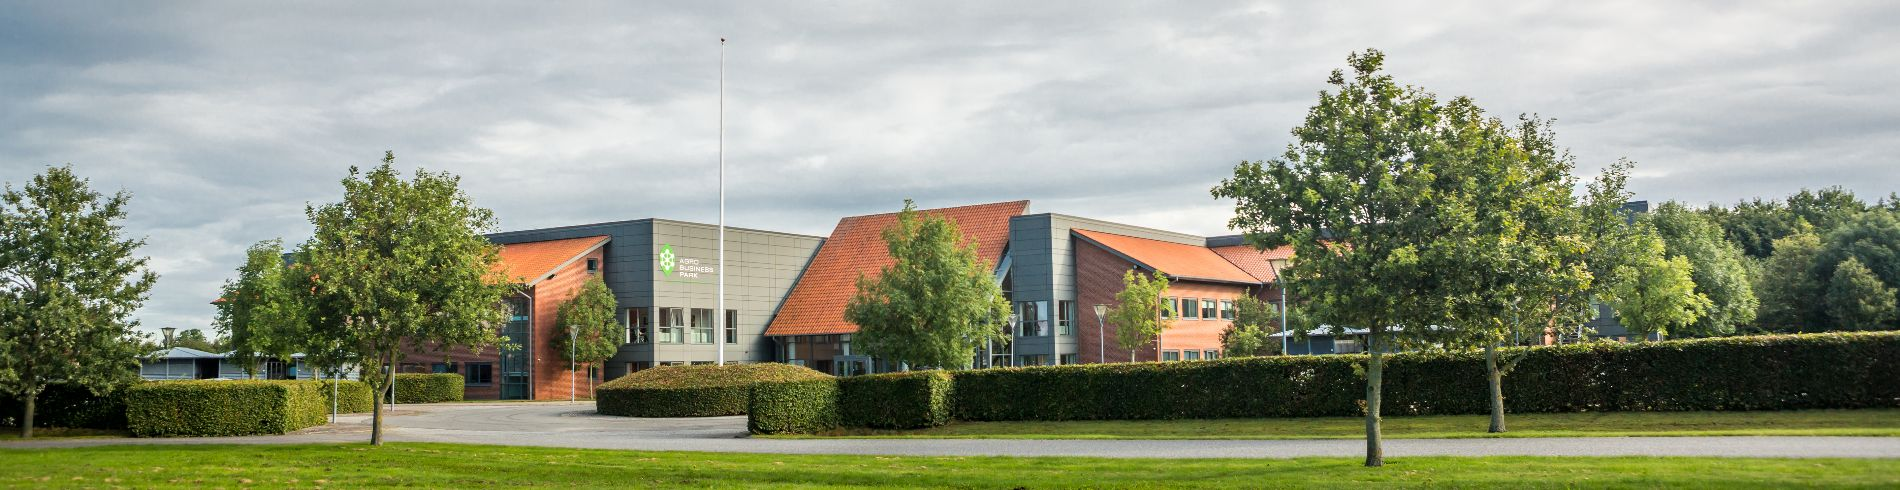 Agro Business Park cover image